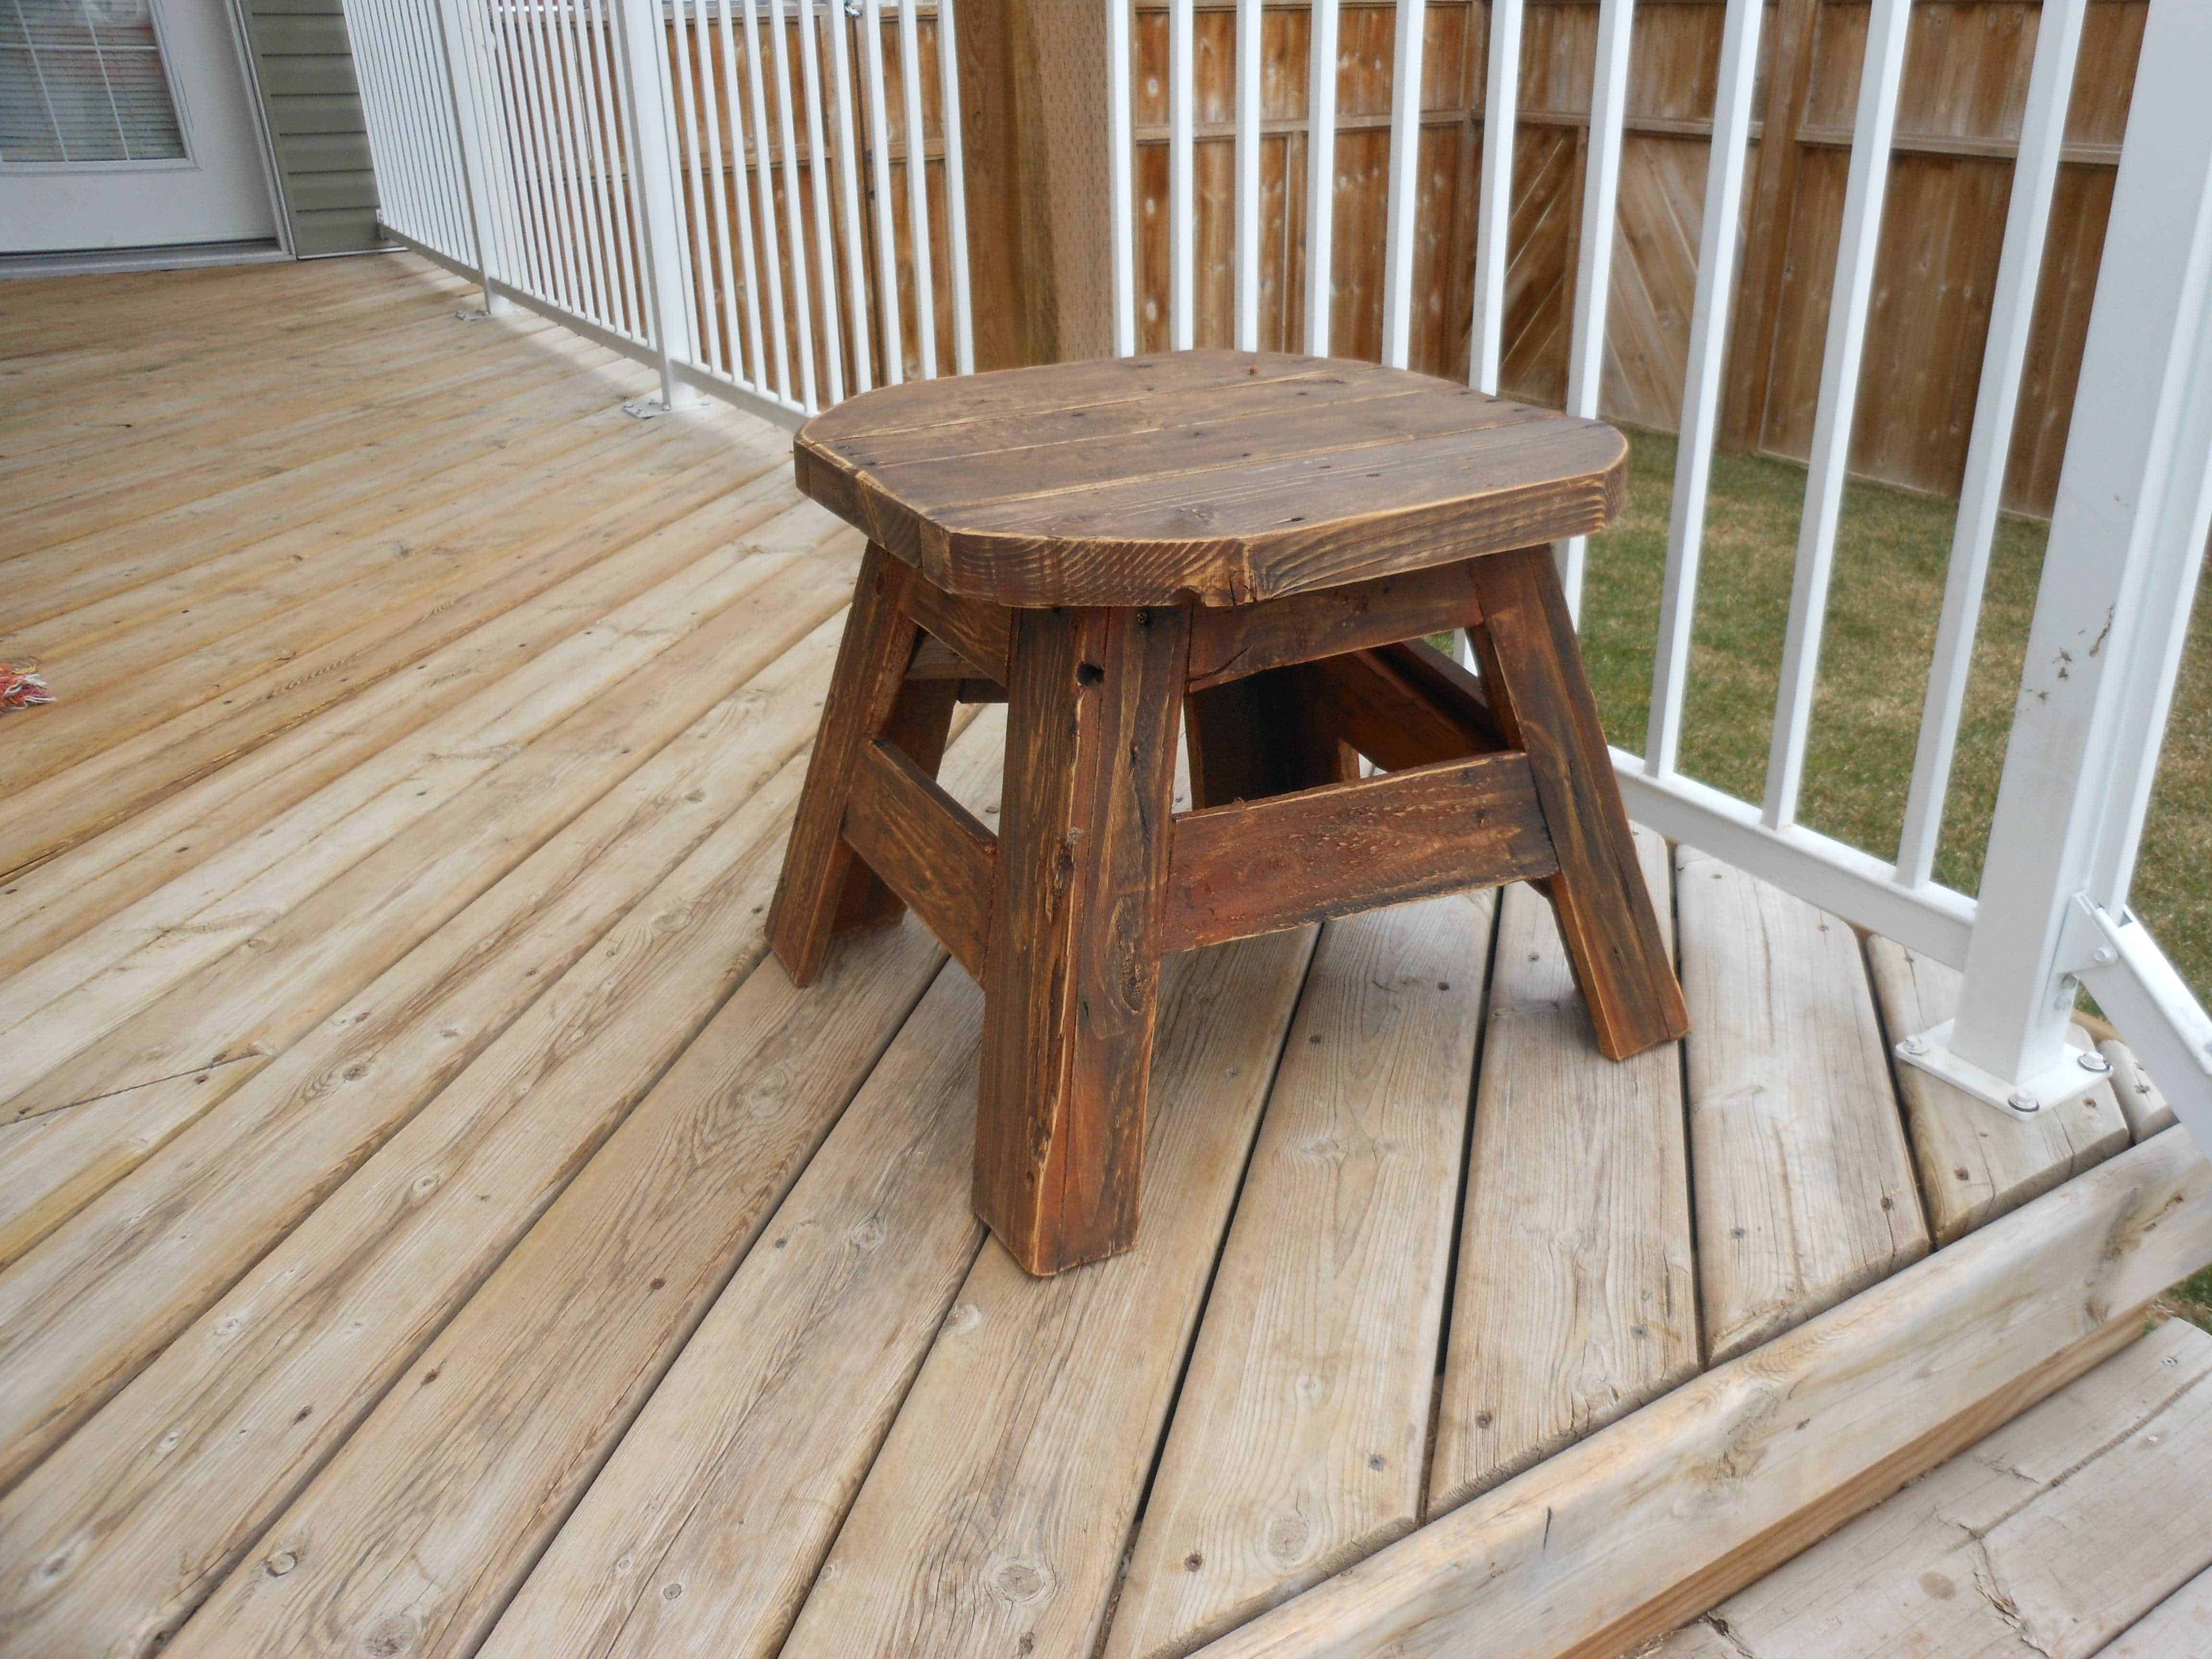 Patio side table made from upcycled pallet wood 1001 pallets for Patio table made from pallets